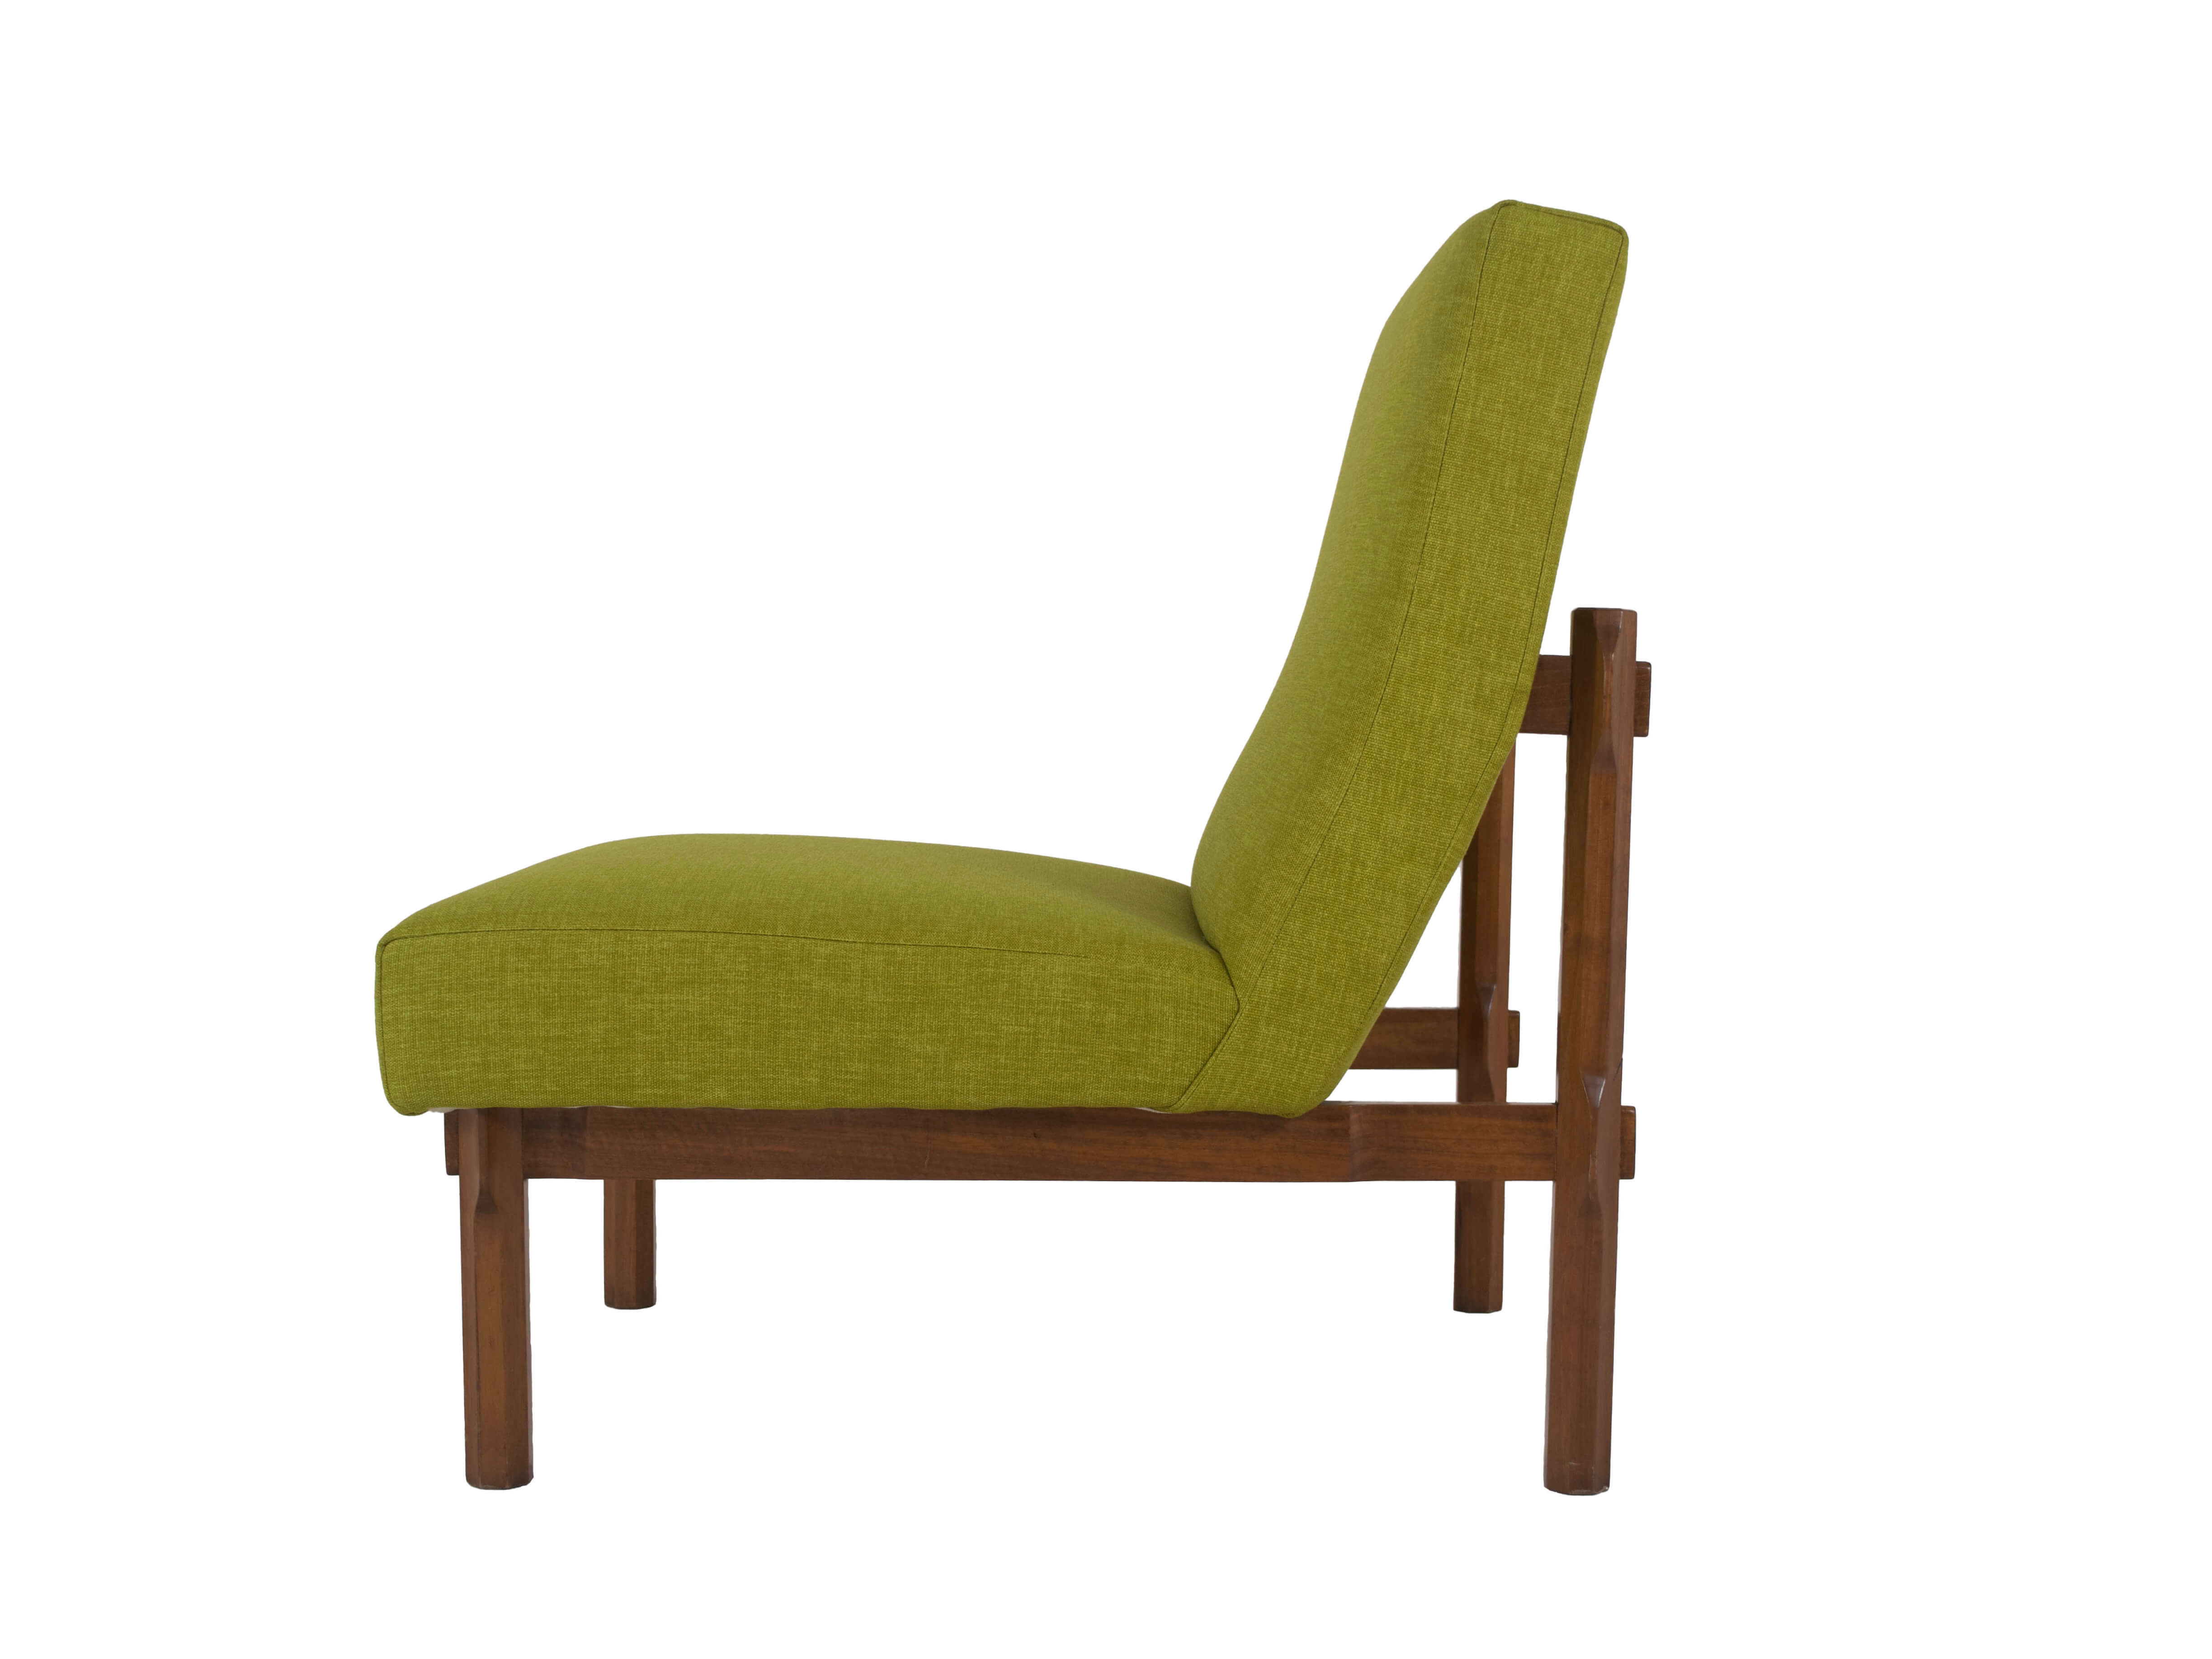 Side view Italian Modern Ico Parisi Chair in Walnut Model 869, Italy 1960s